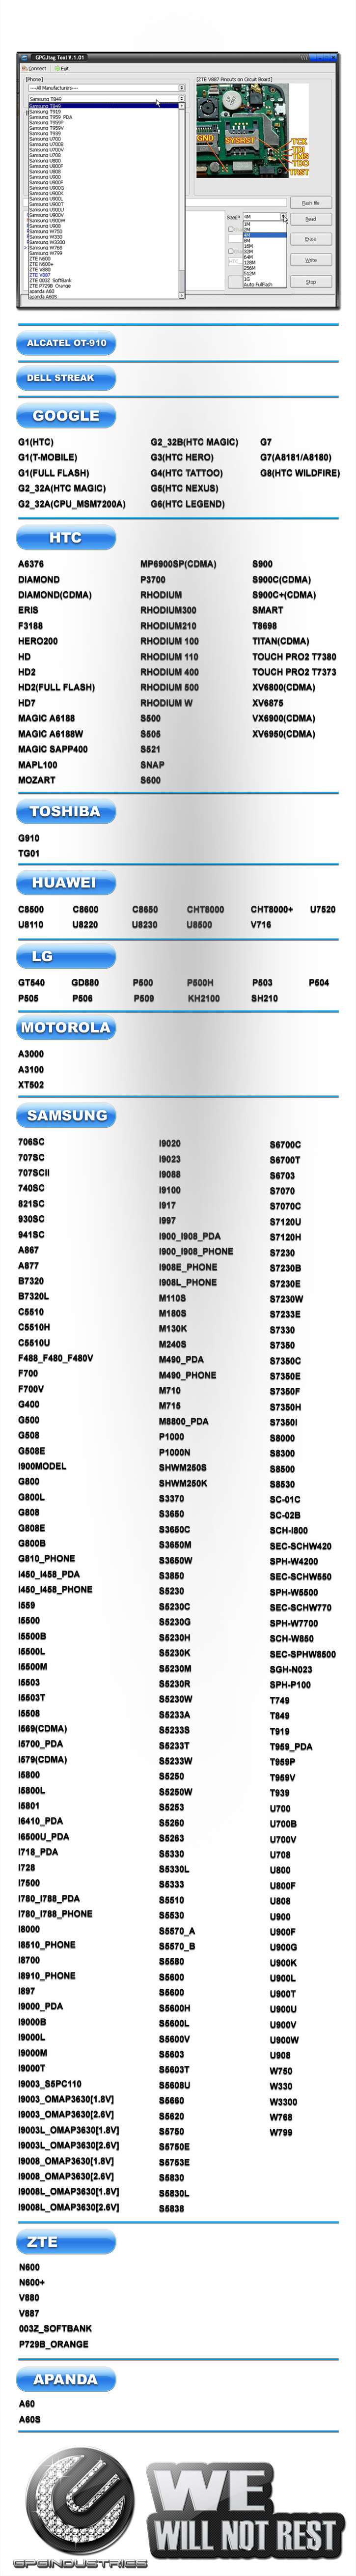 2011 11 09 GPGJTAG supported list 725 02